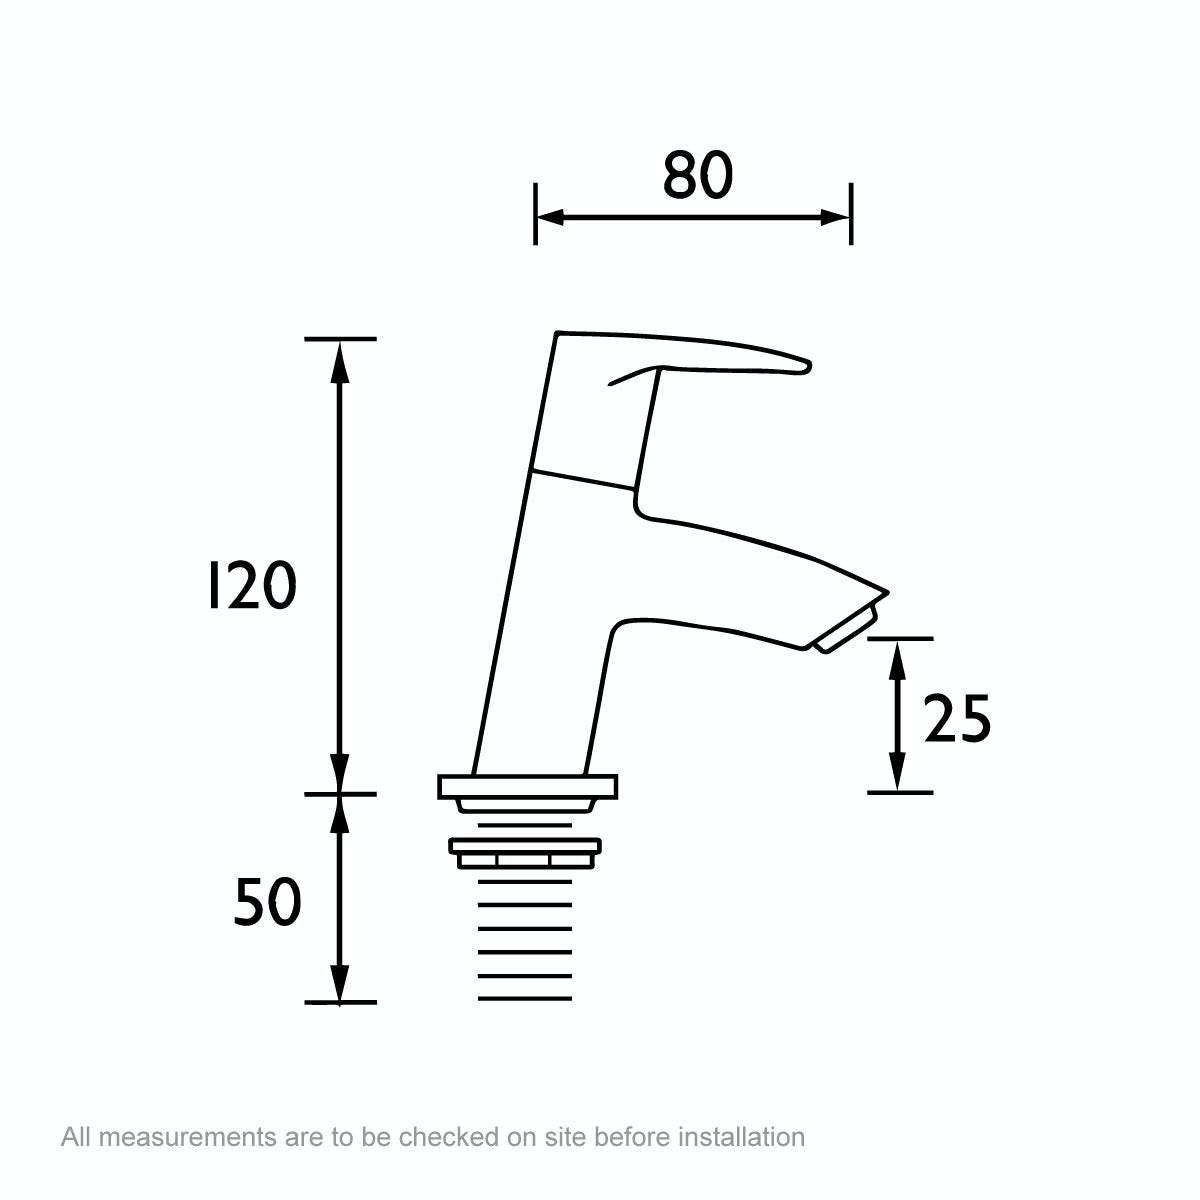 Dimensions for Bristan Smile basin taps